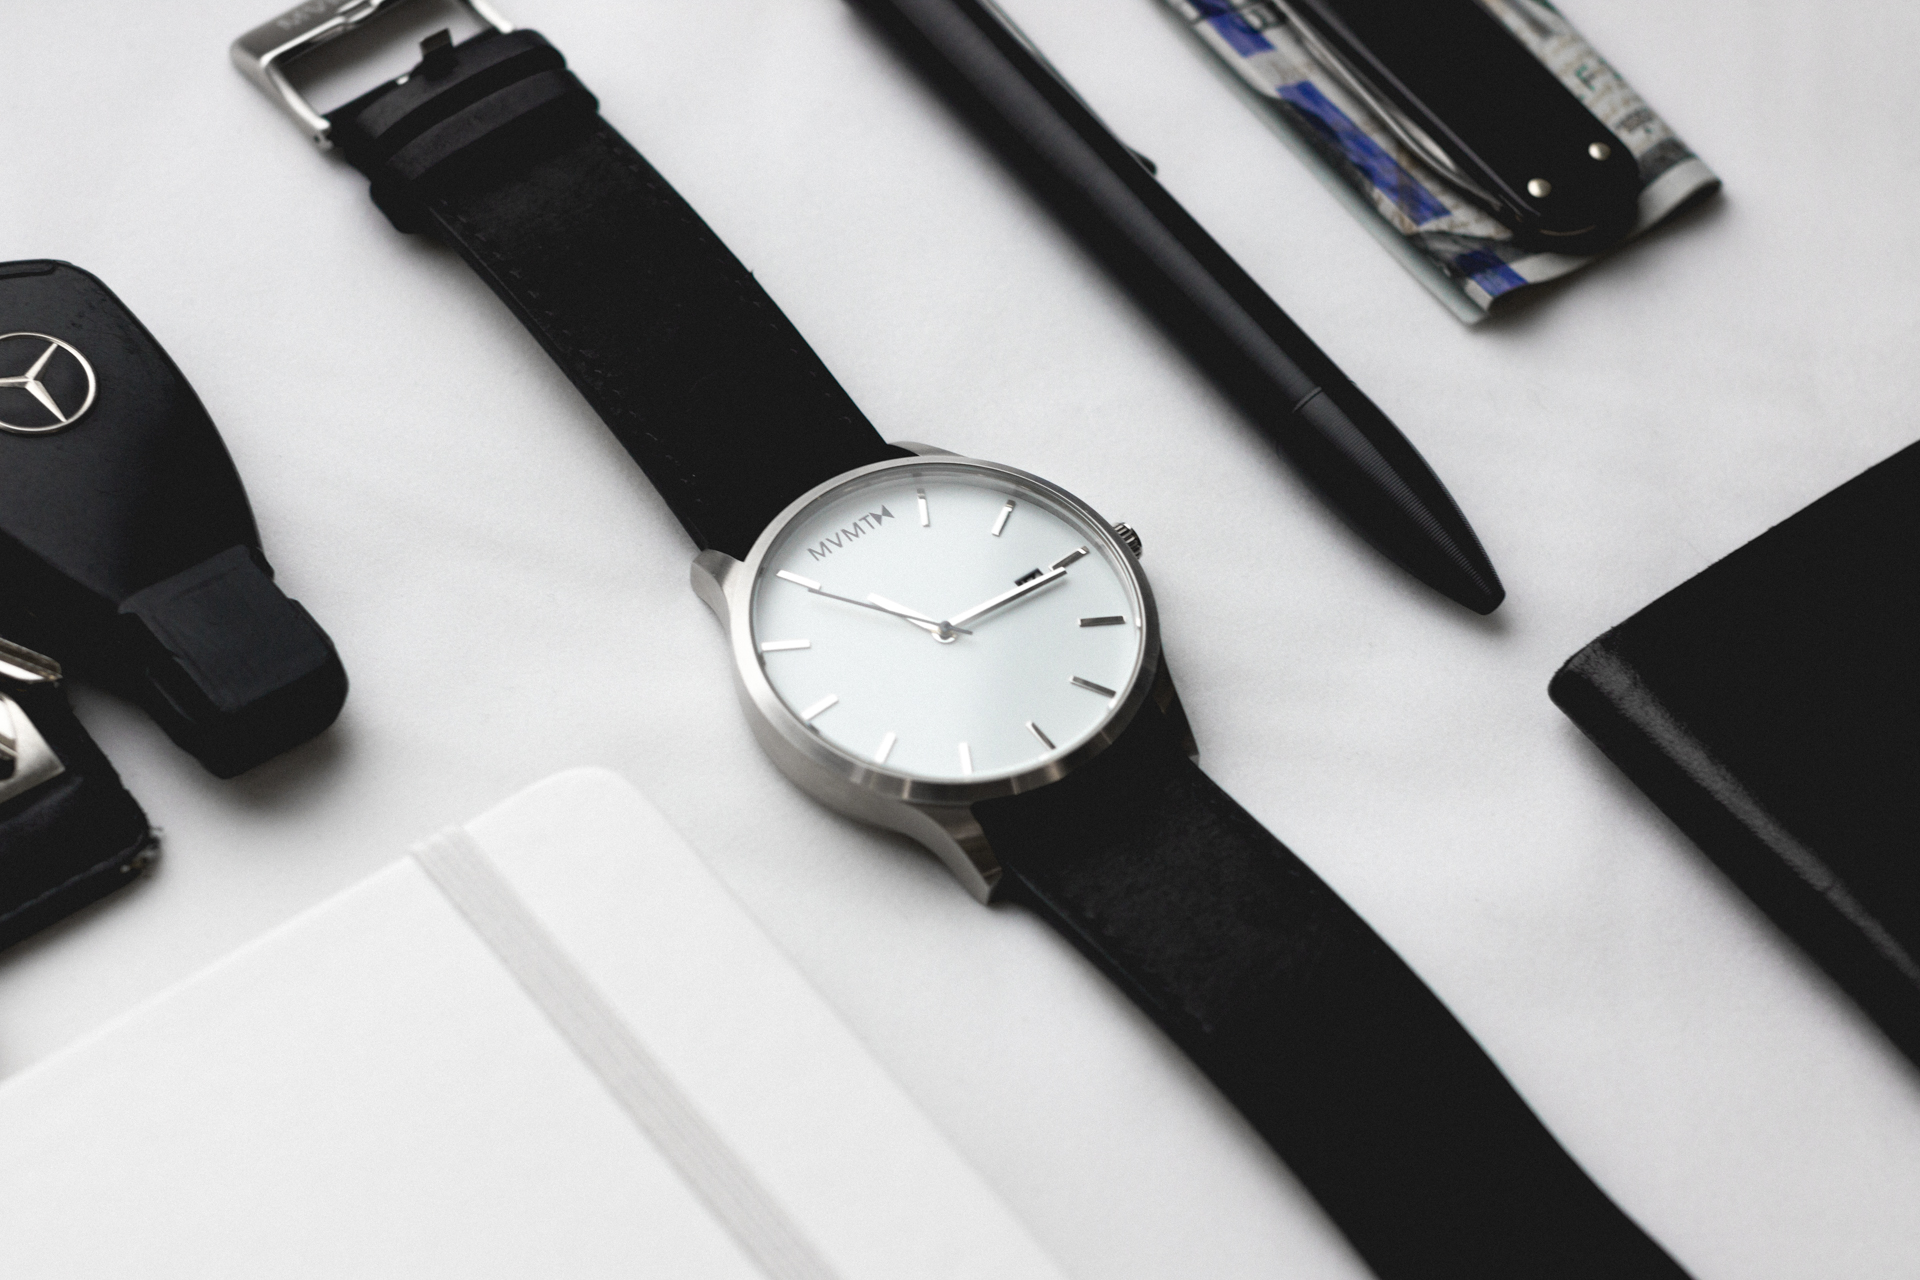 white minimal picto hey gents under analogue watches handsomely medium rosendahl watch